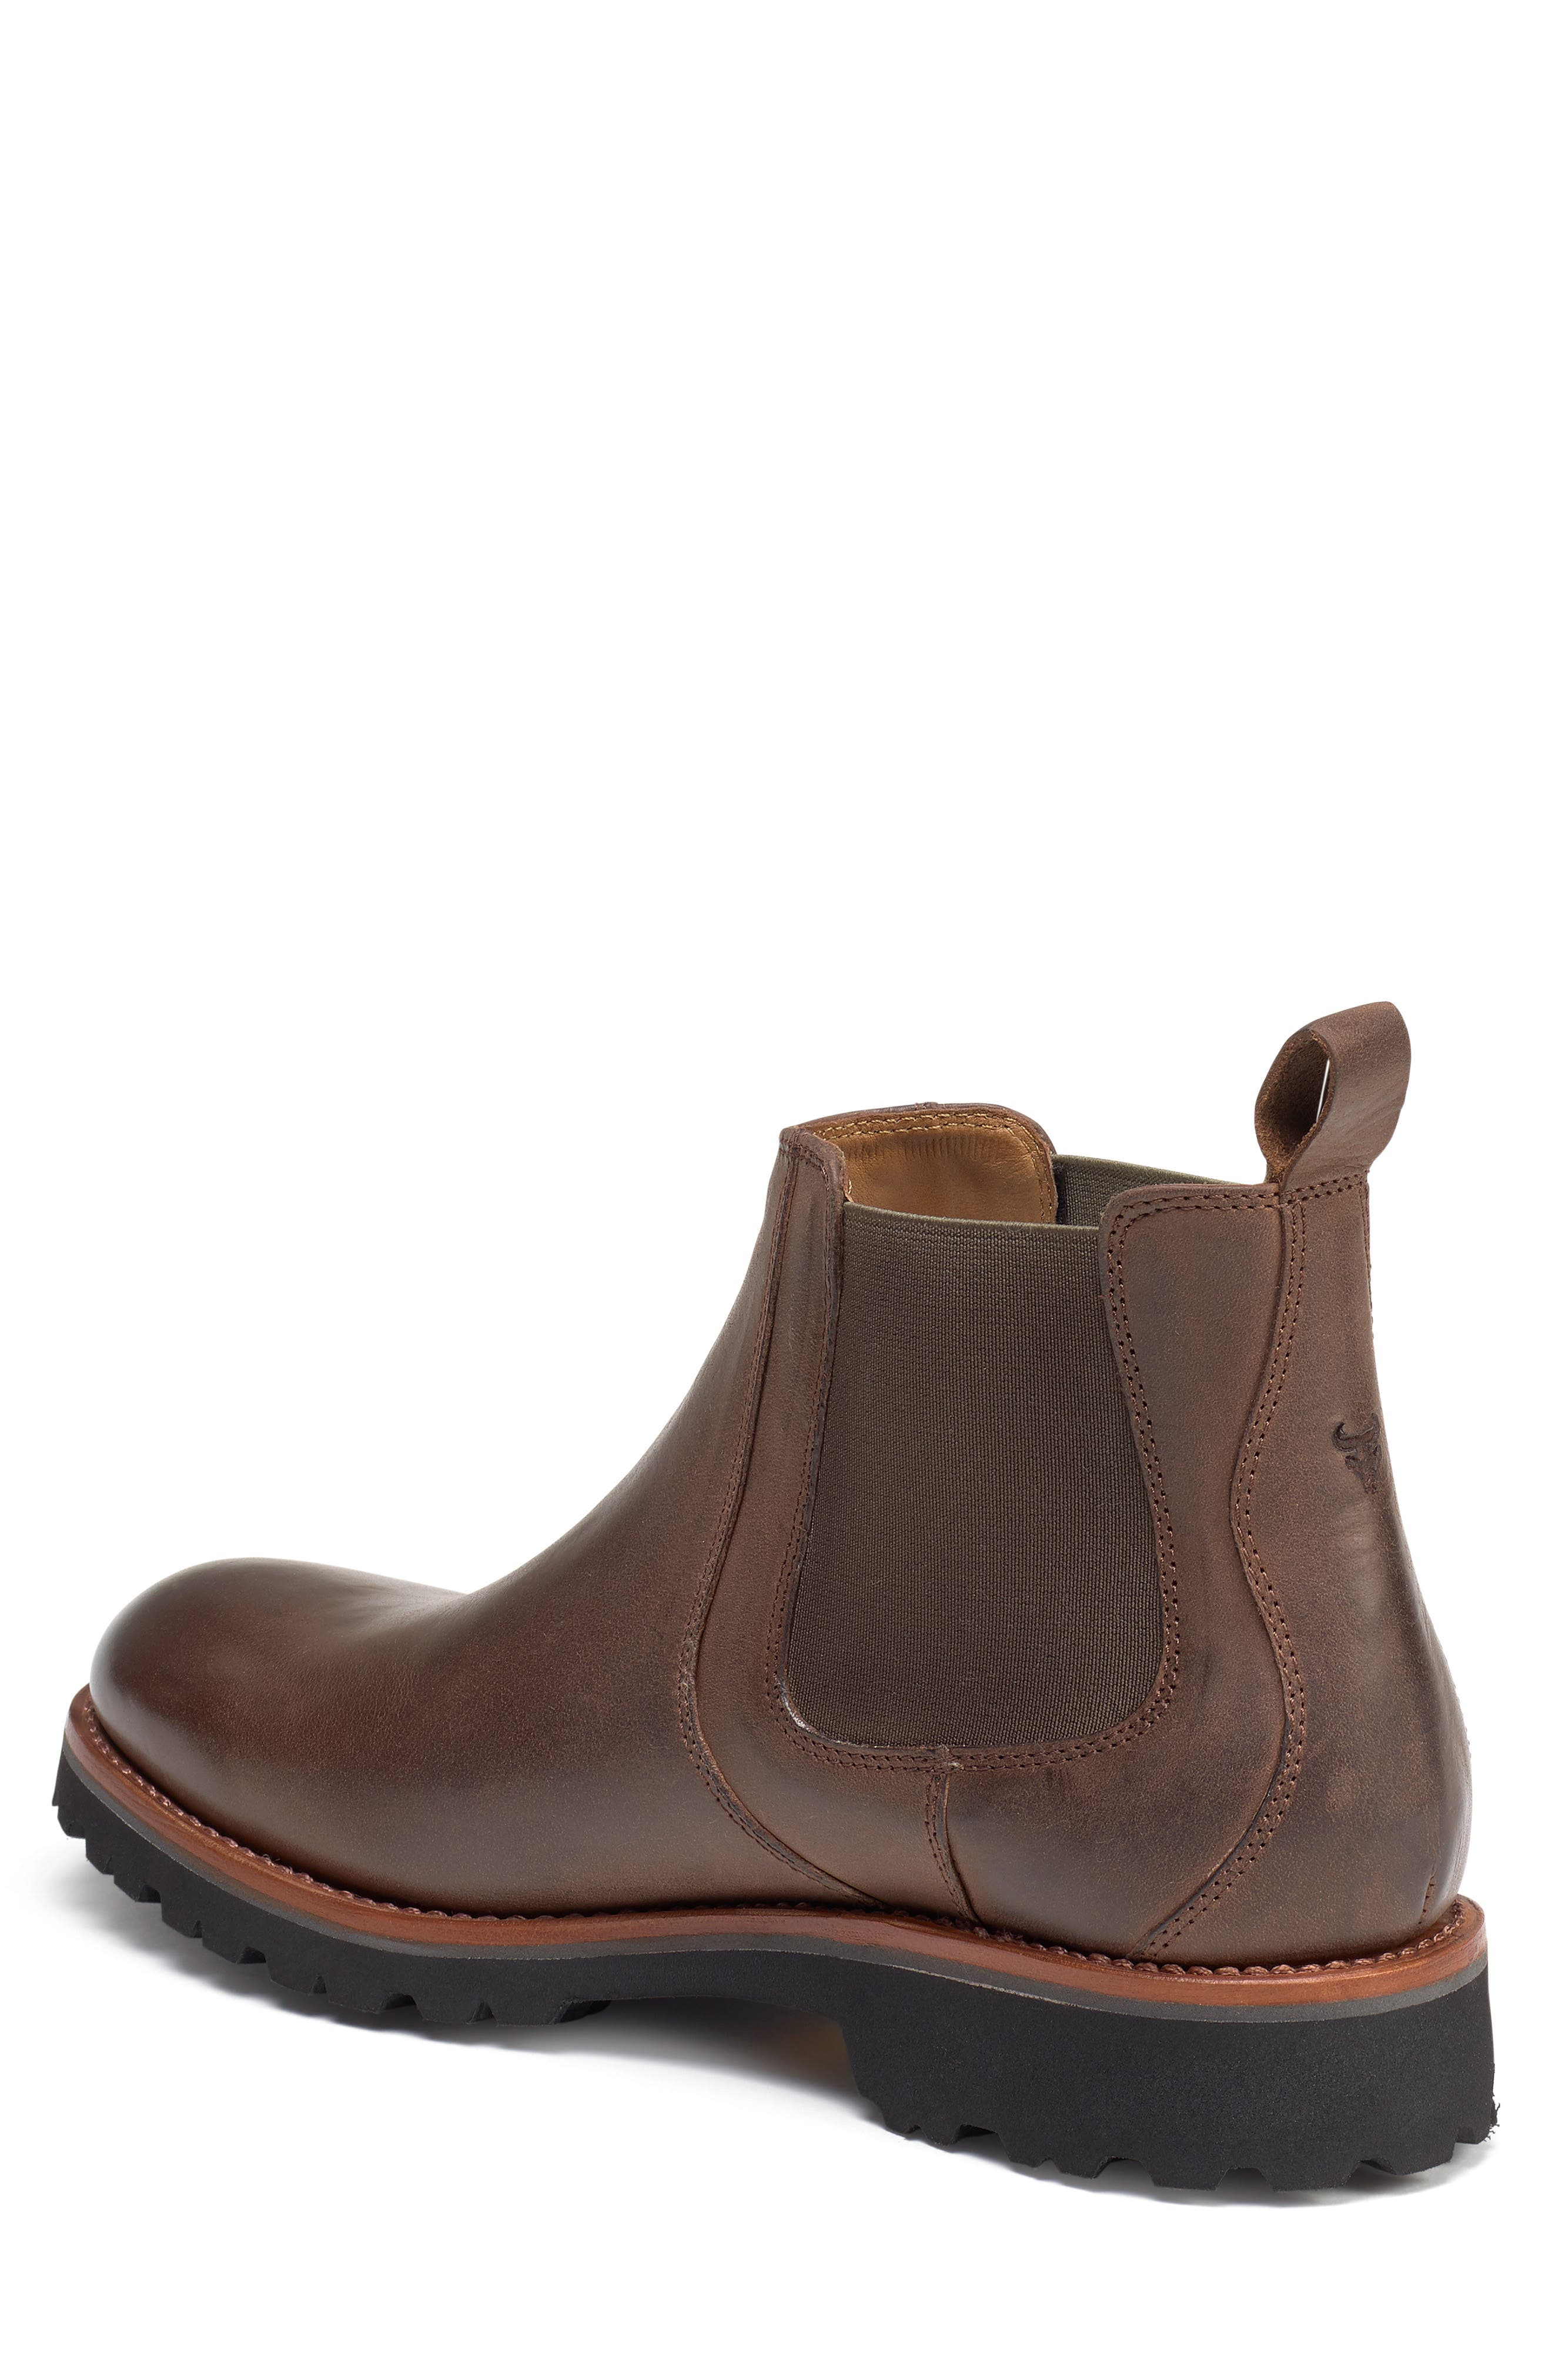 Hastings Lugged Chelsea Boot,                             Alternate thumbnail 2, color,                             BROWN LEATHER